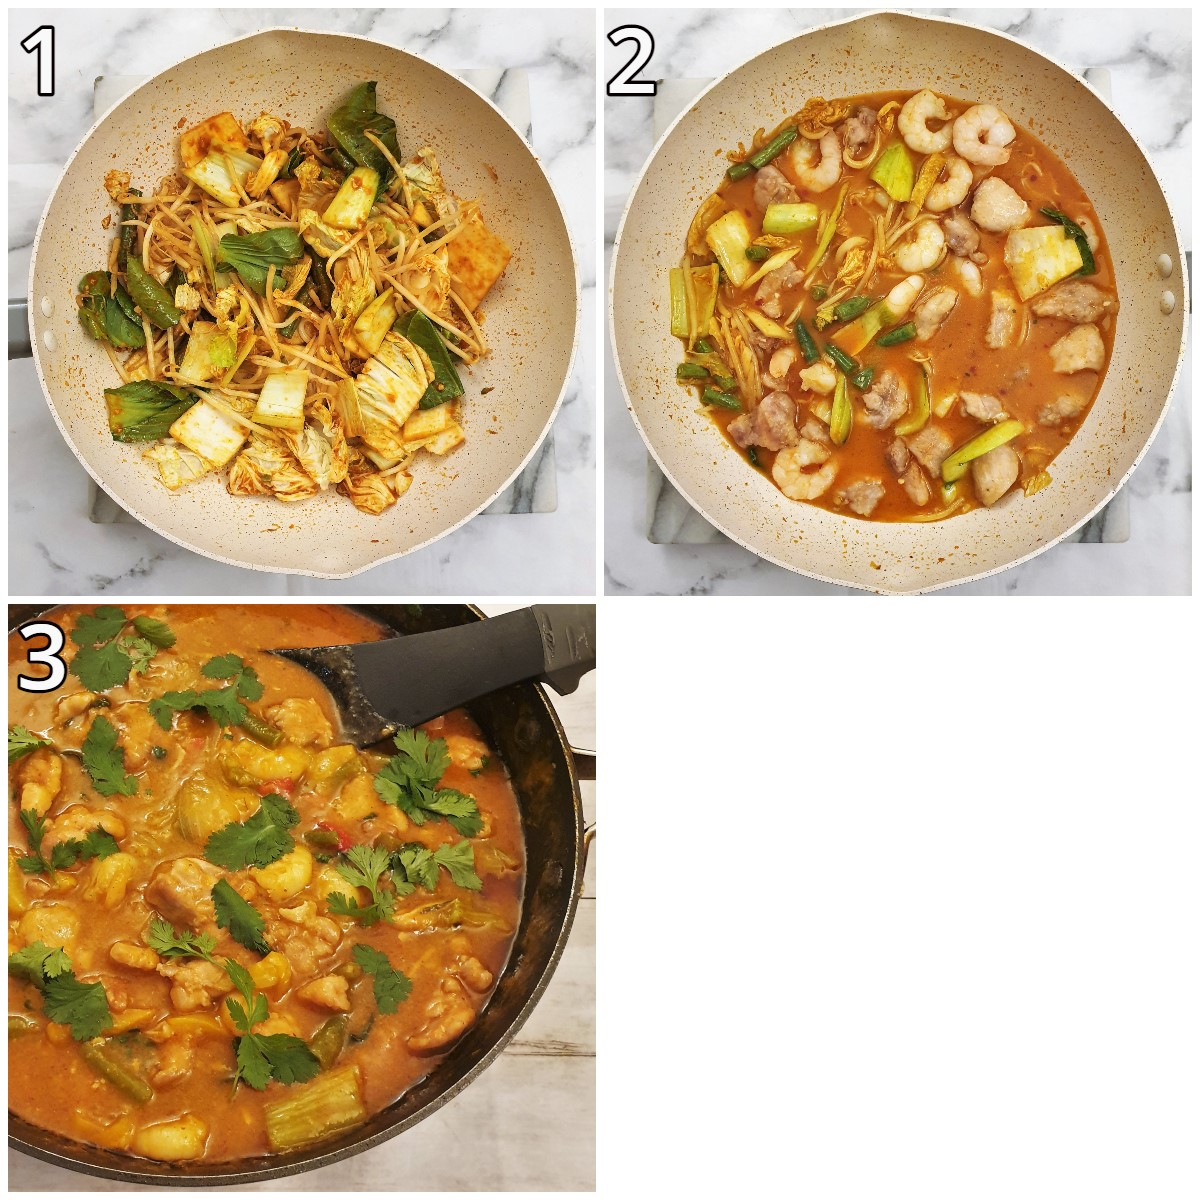 Steps for making Thai red curry.